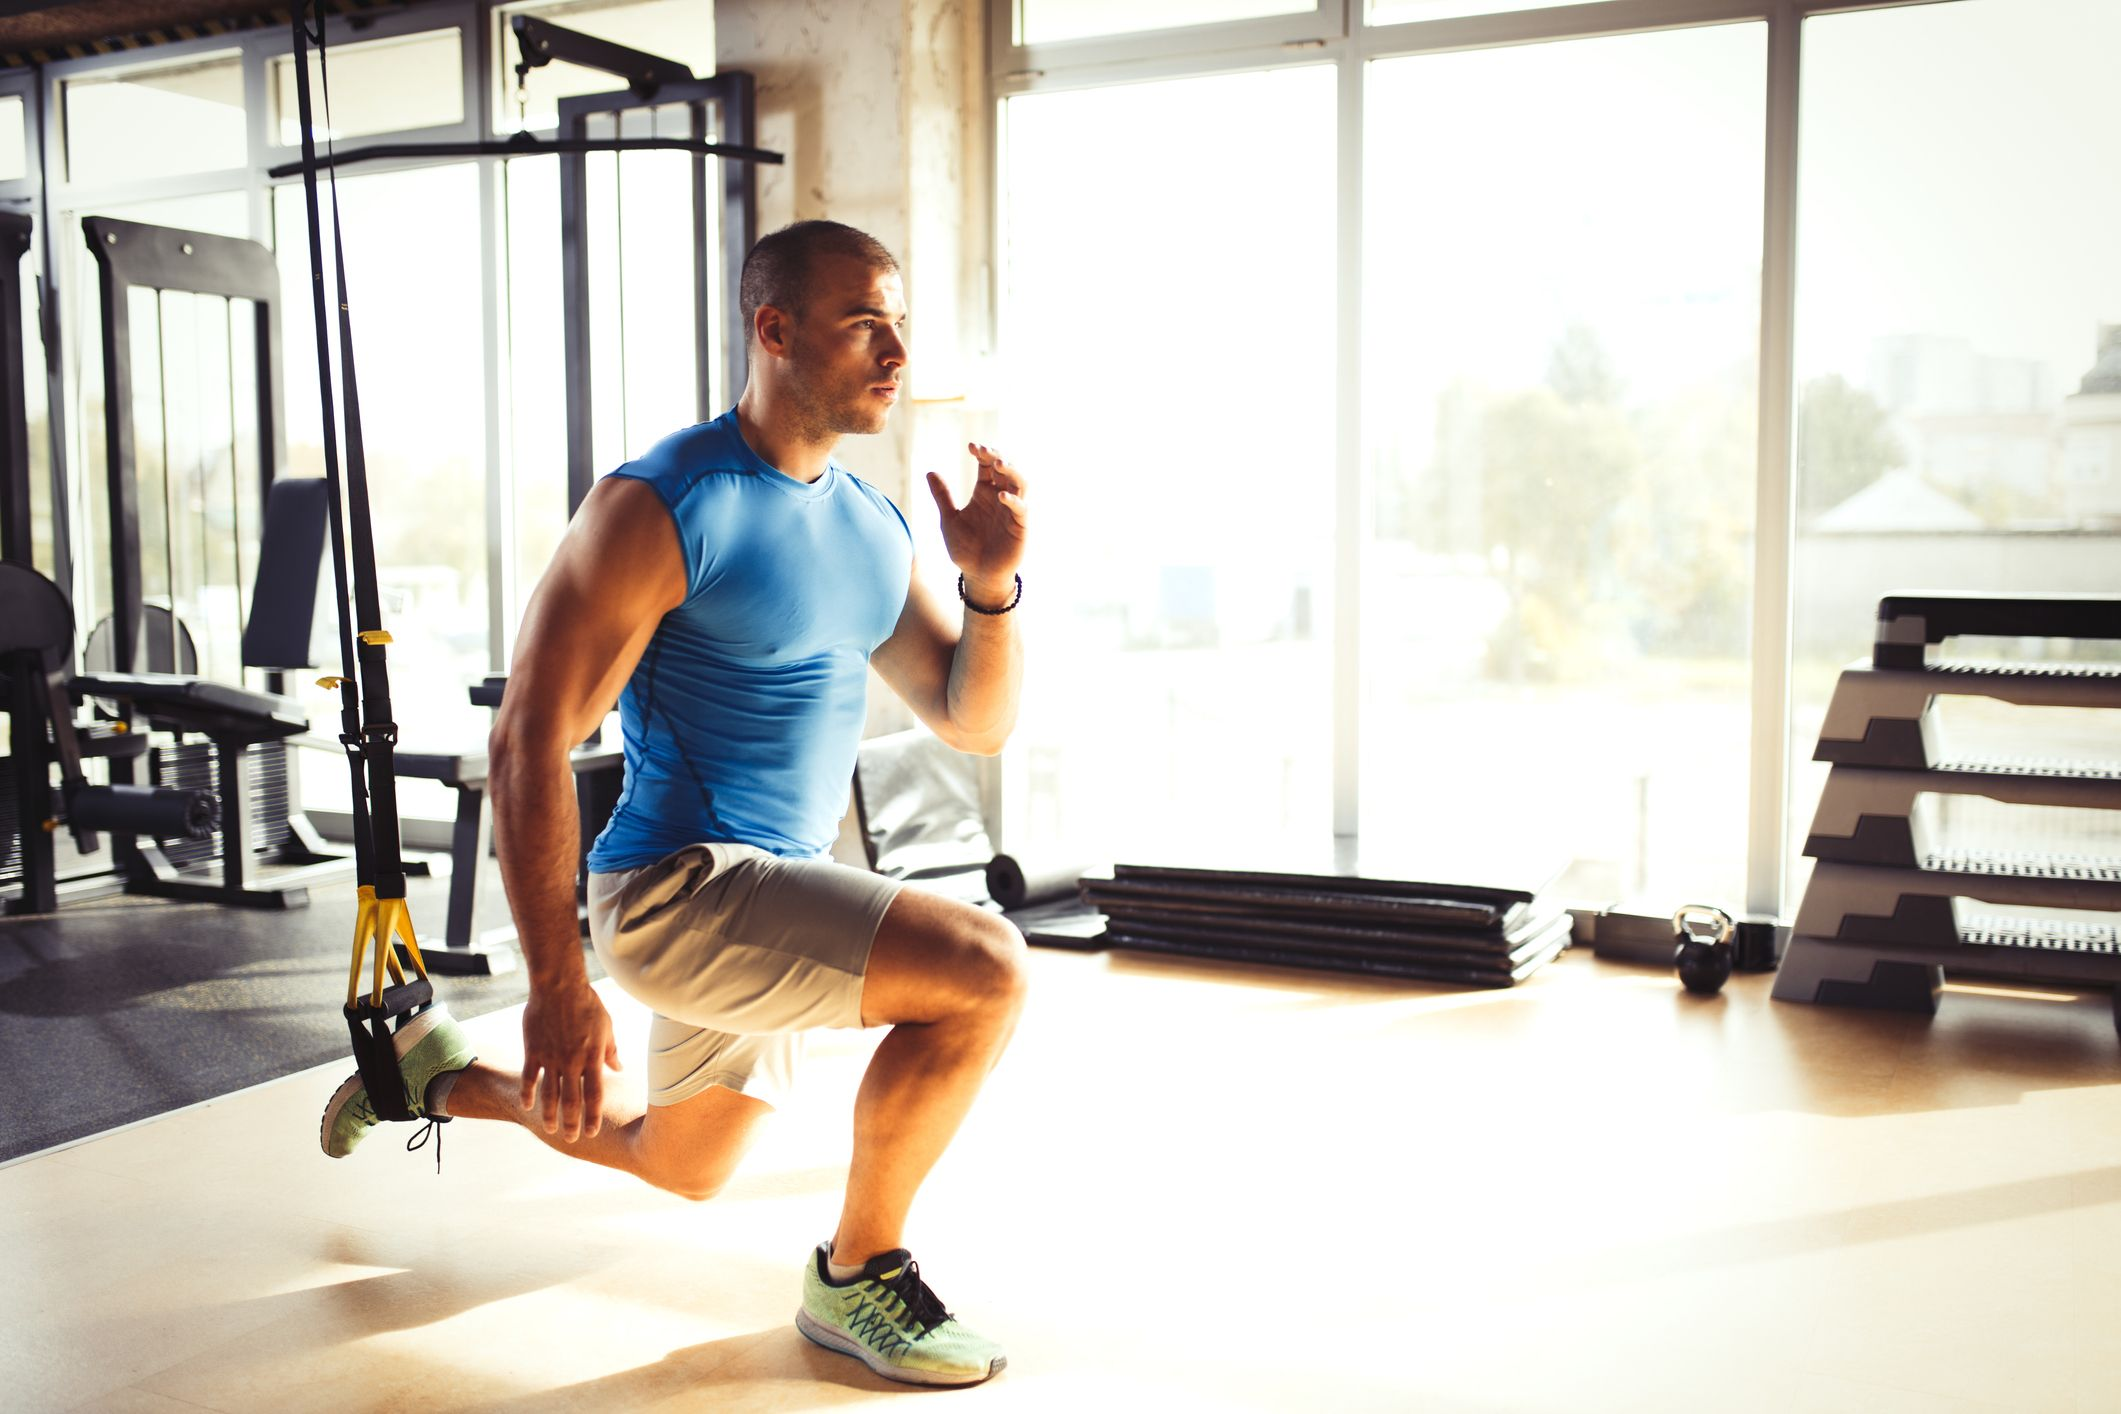 4 Strength Moves to Make You a Stronger Runner